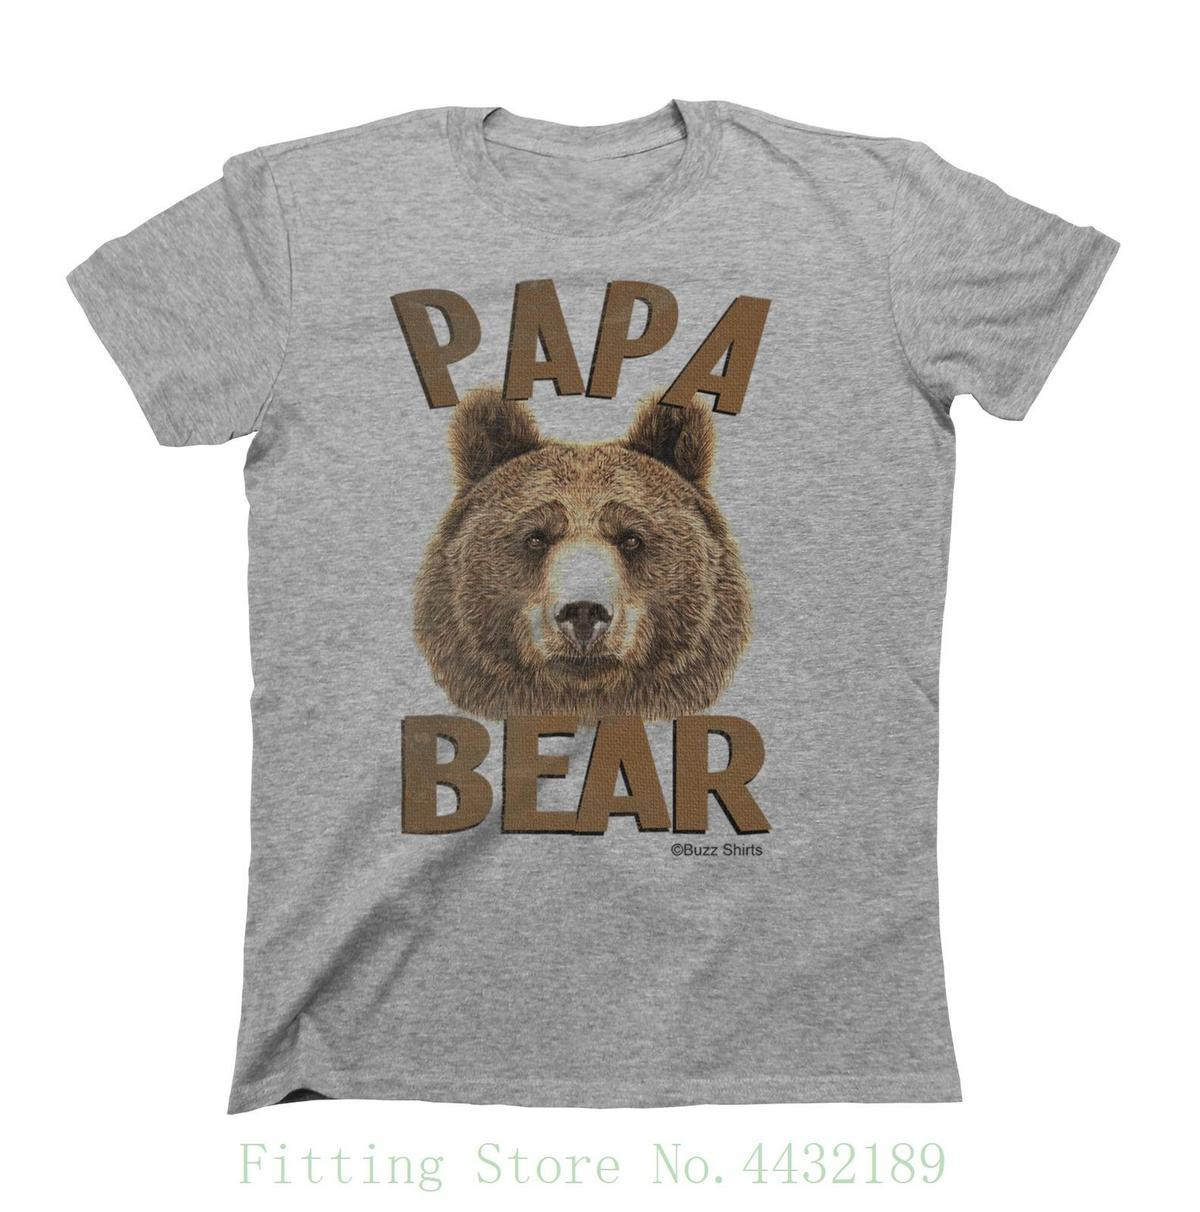 03870be7bda7 Papa Bear Fathers T Shirt Gift For Dad Birthday Fathers Day Christmas Daddy  Casual Short Sleeve Shirt Tee Be Awesome T Shirt Print On Tee Shirt From  Jie3, ...